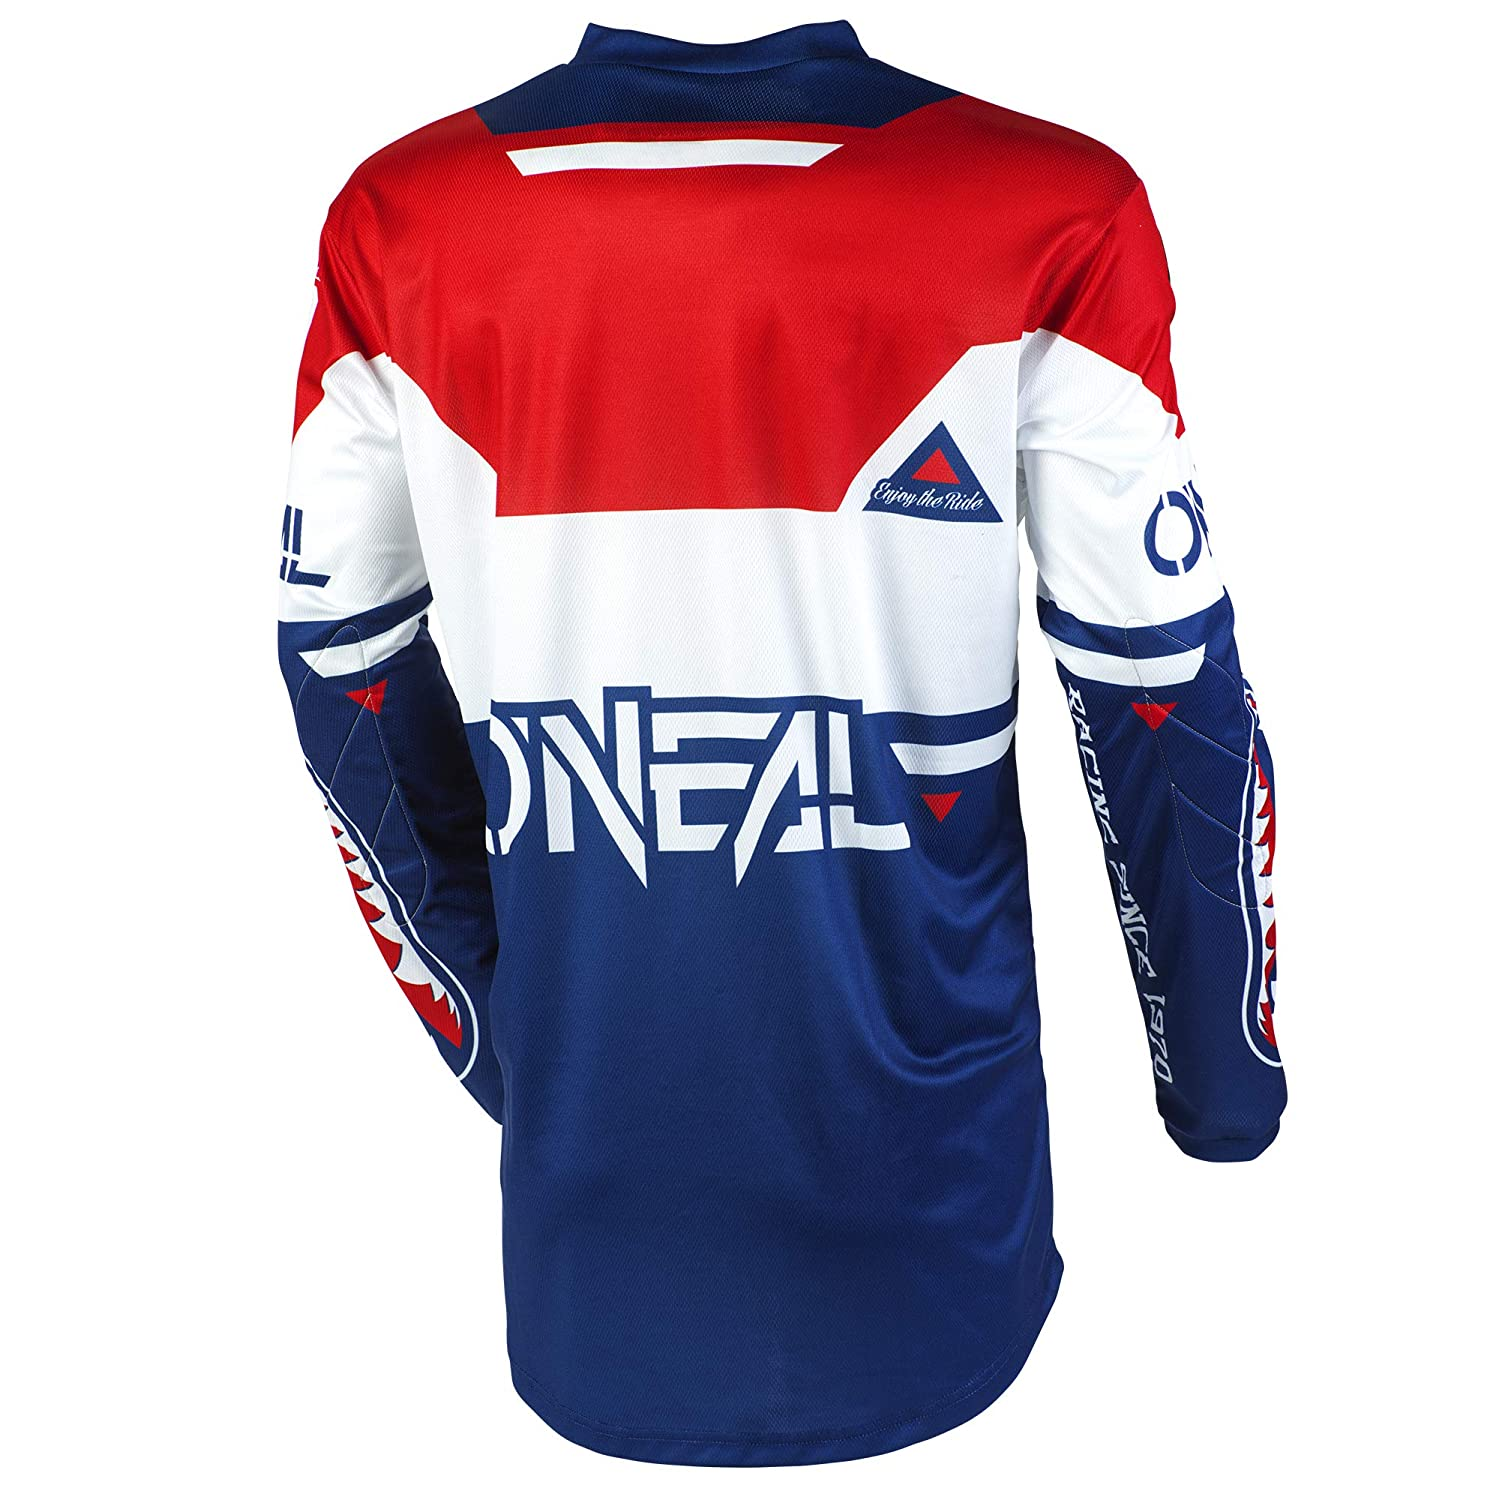 Blue//Red, M ONeal Element Racewear Child Jersey